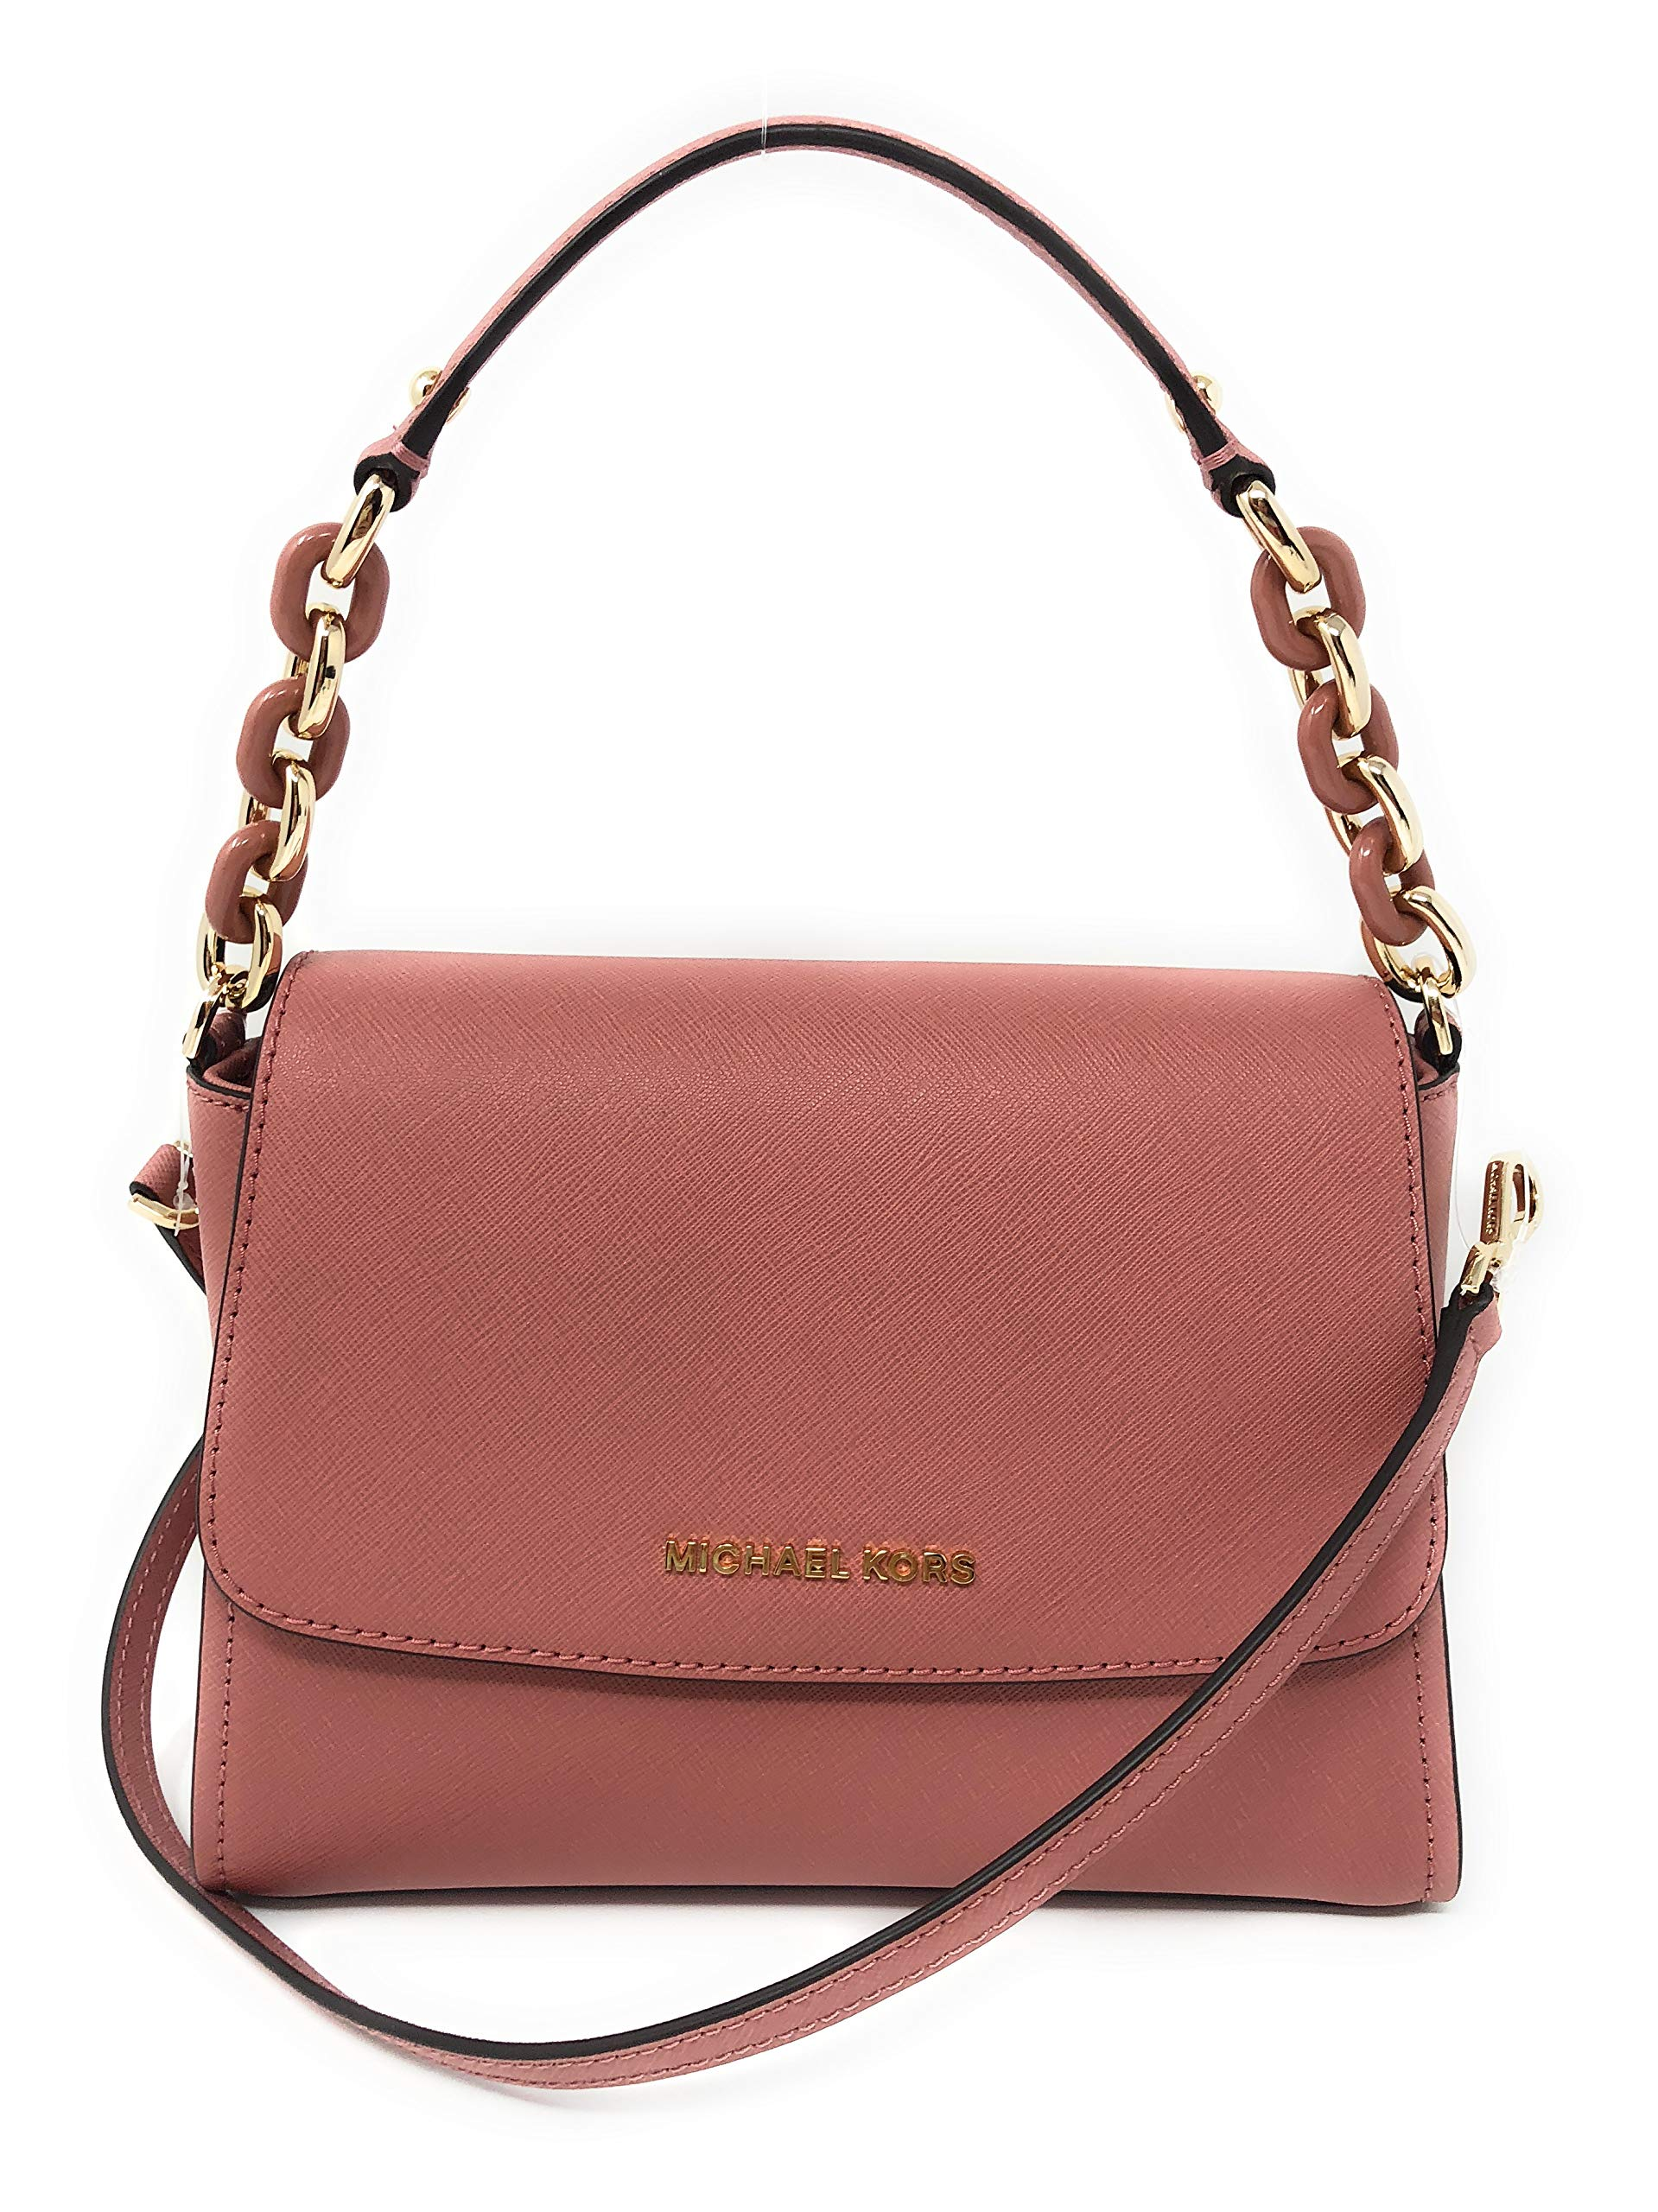 Michael Kors Small Sofia Portia East West Satchel Crossbody Rose Pink Leather